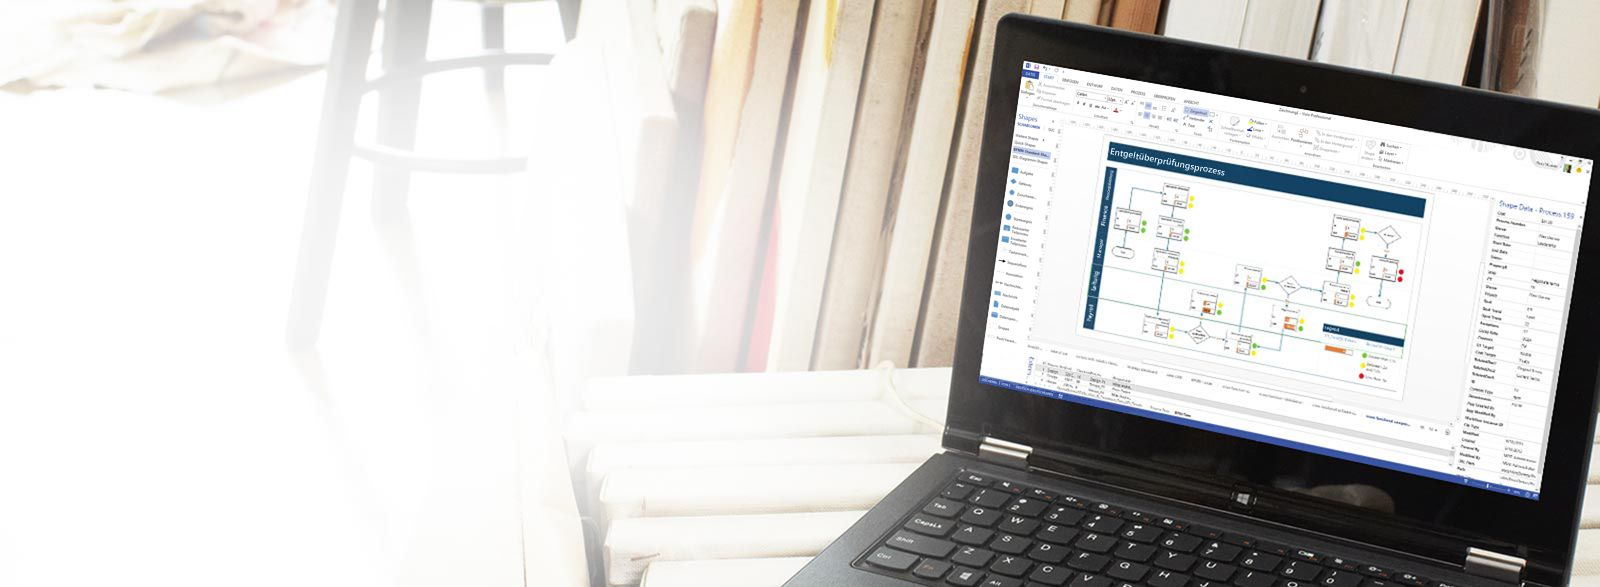 Ein Laptop mit Visio Pro für Office 365 in Aktion